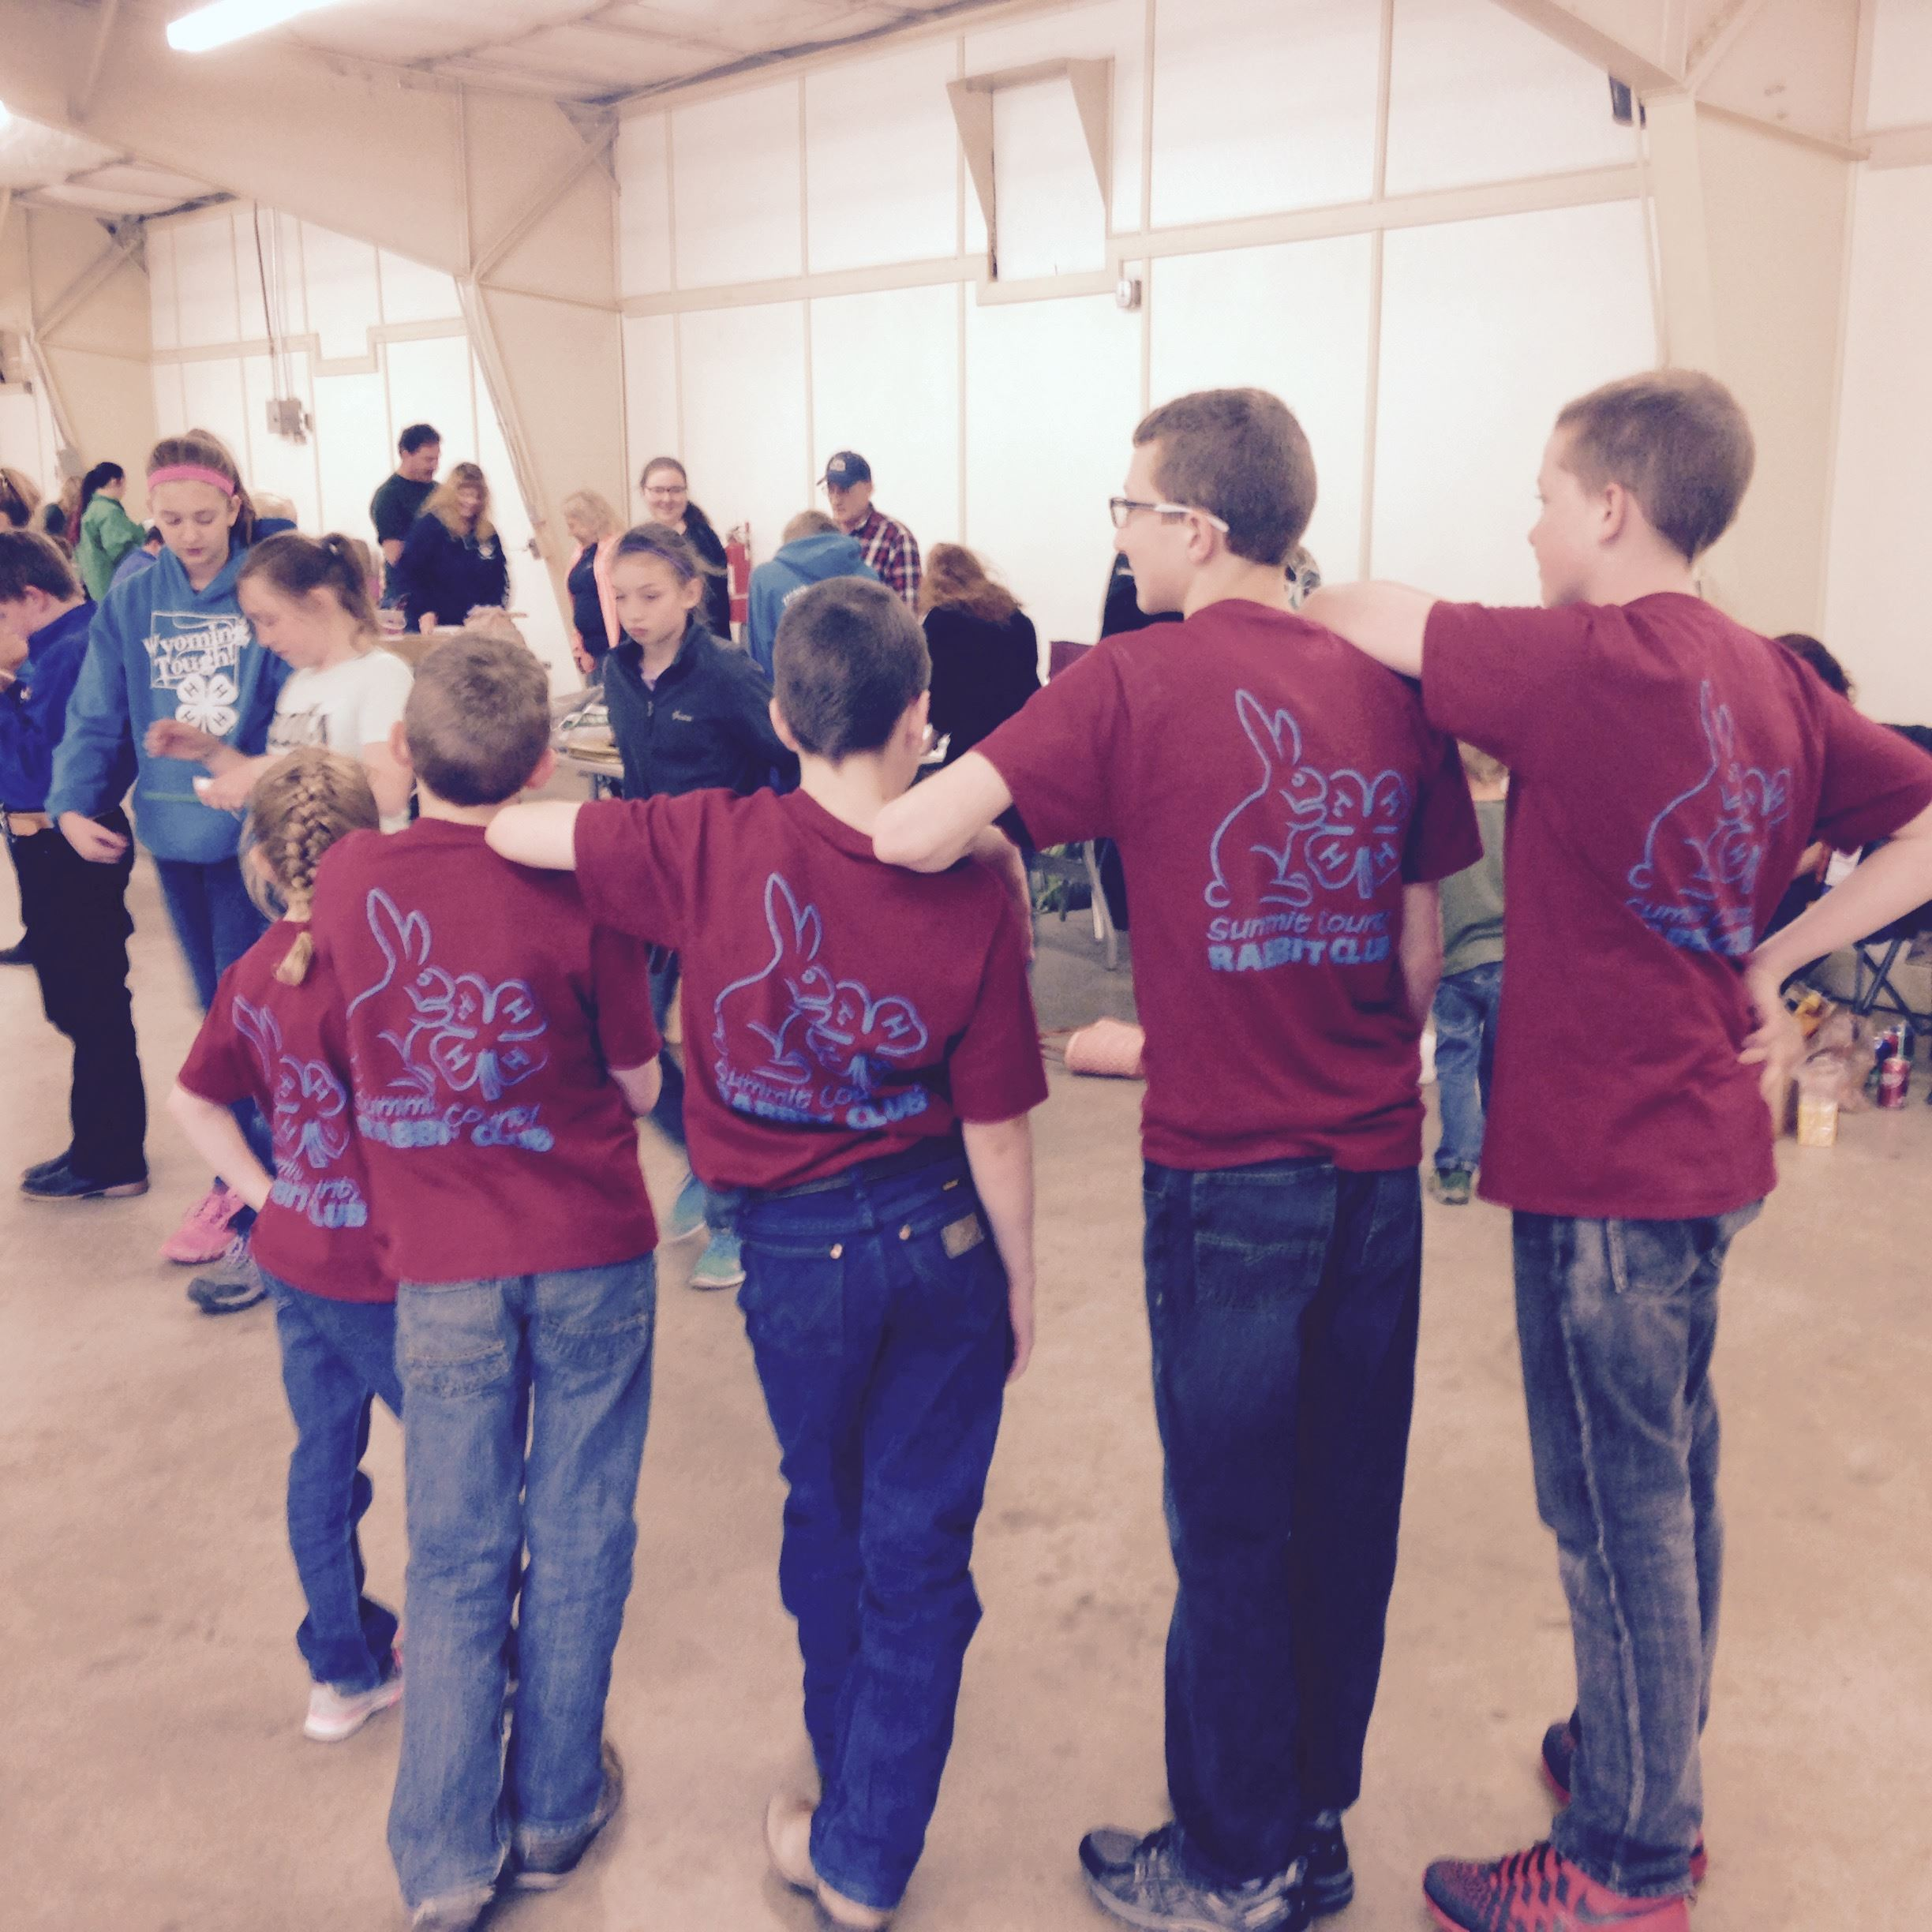 4-H Rabbit club participants